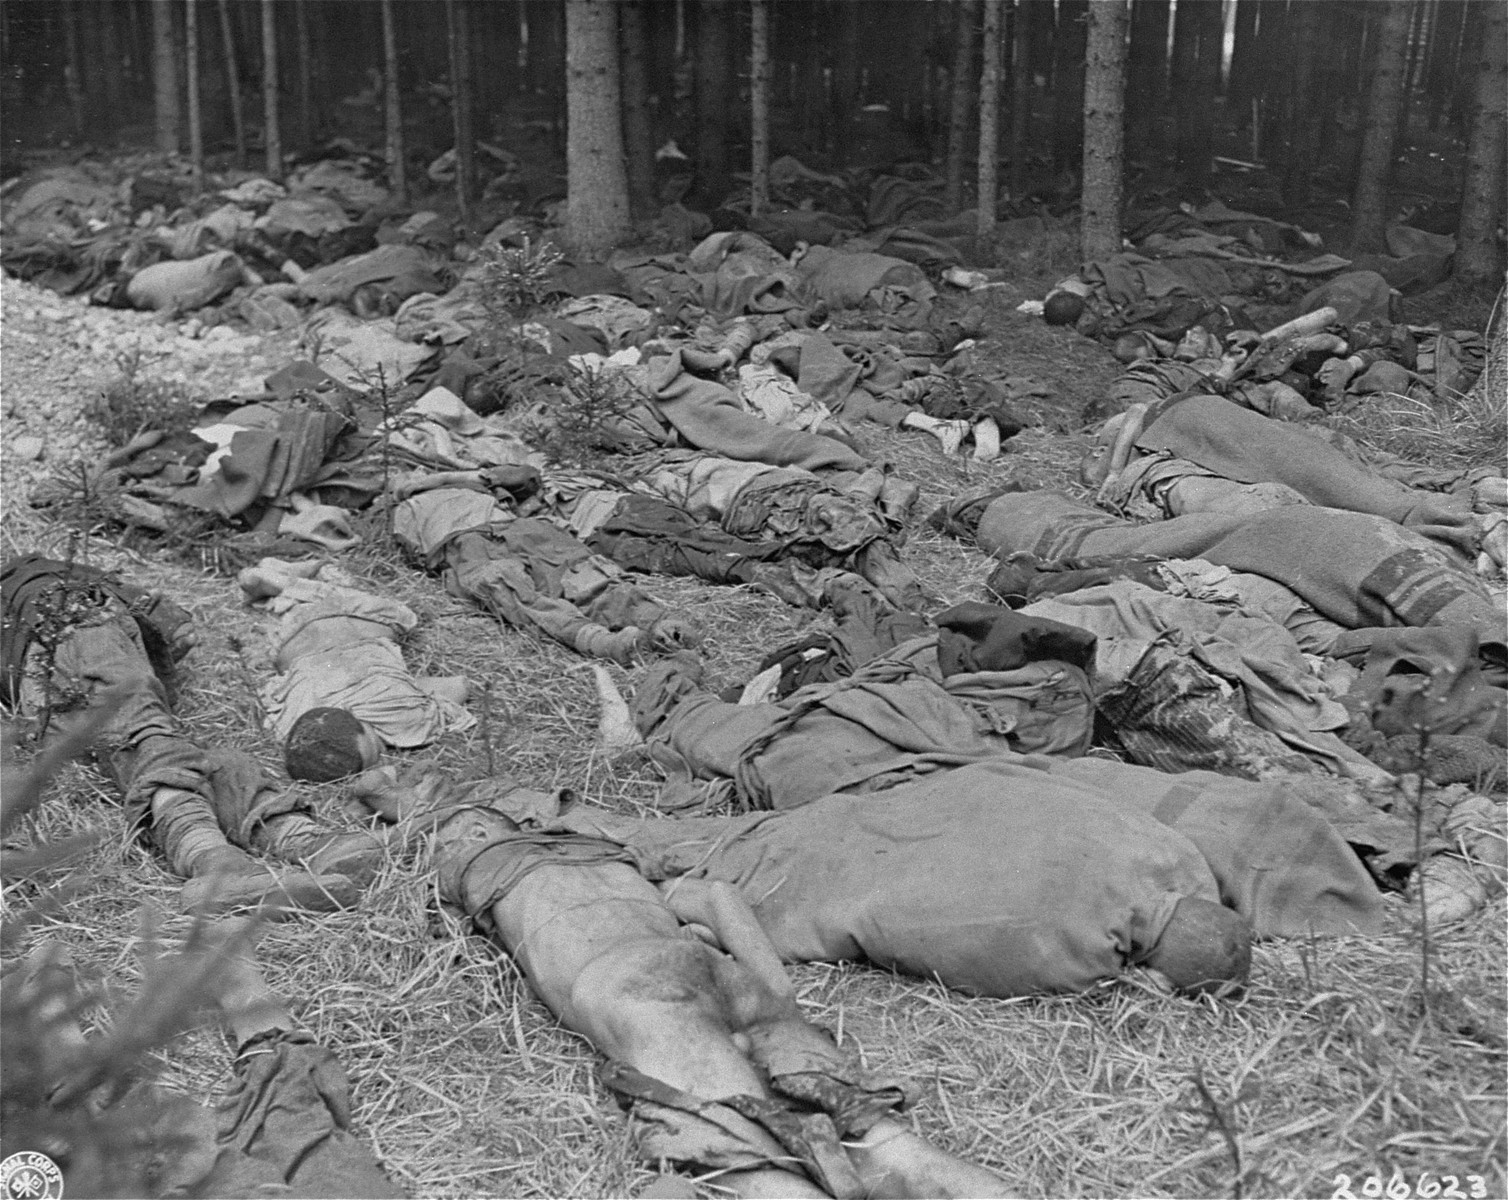 The corpses of prisoners are strewn on the ground in a wooded area of the Gunskirchen concentration camp.